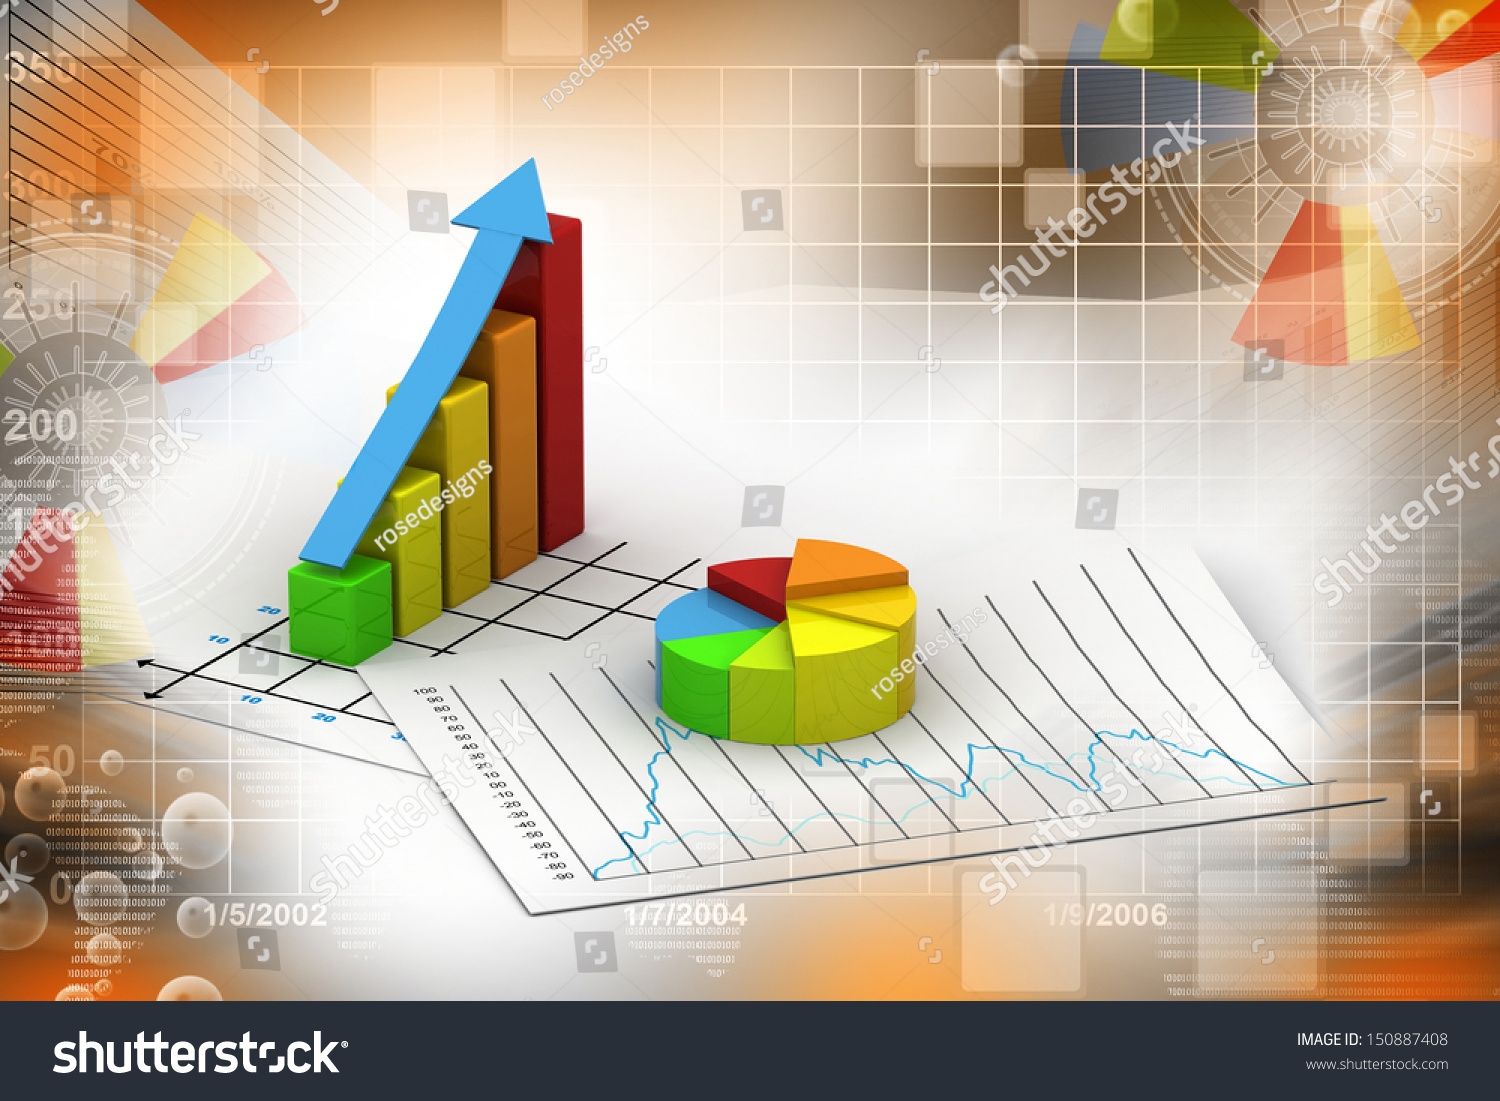 Business graph pie chart stock illustration 150887408 shutterstock business graph and pie chart nvjuhfo Image collections